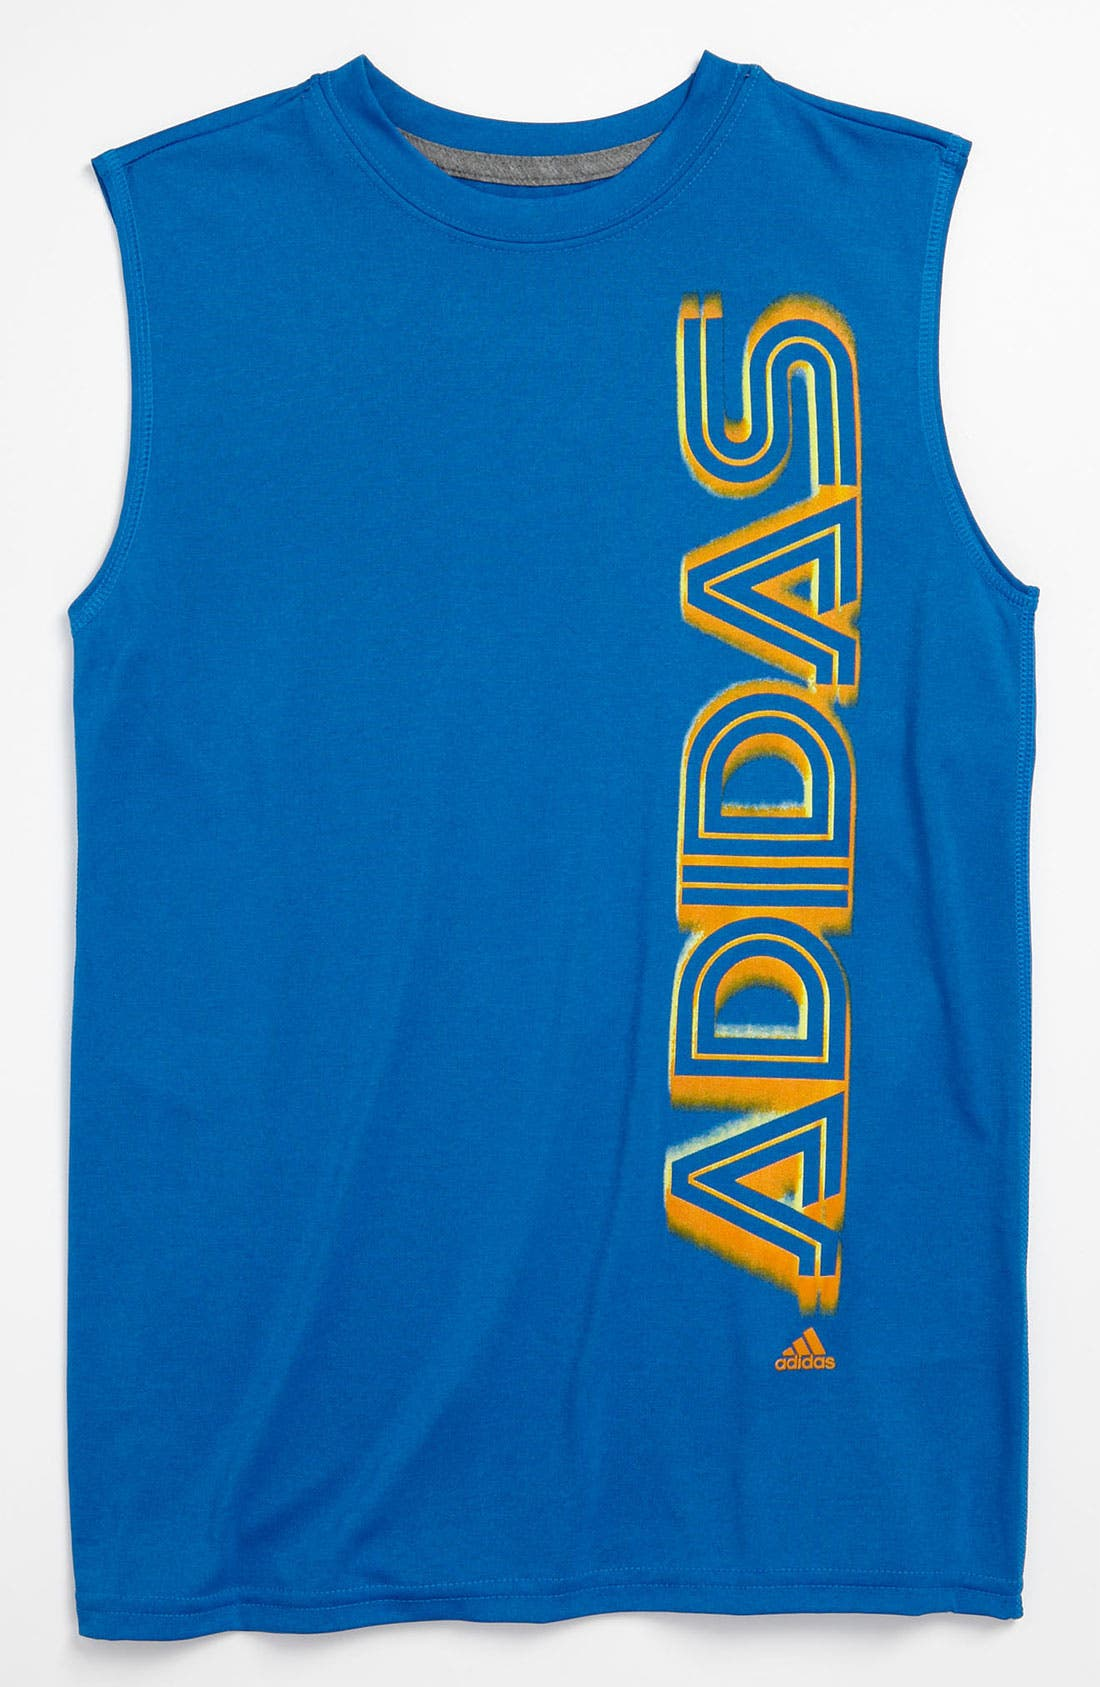 Main Image - adidas 'CLIMA Tracers' Tank Top (Big Boys)